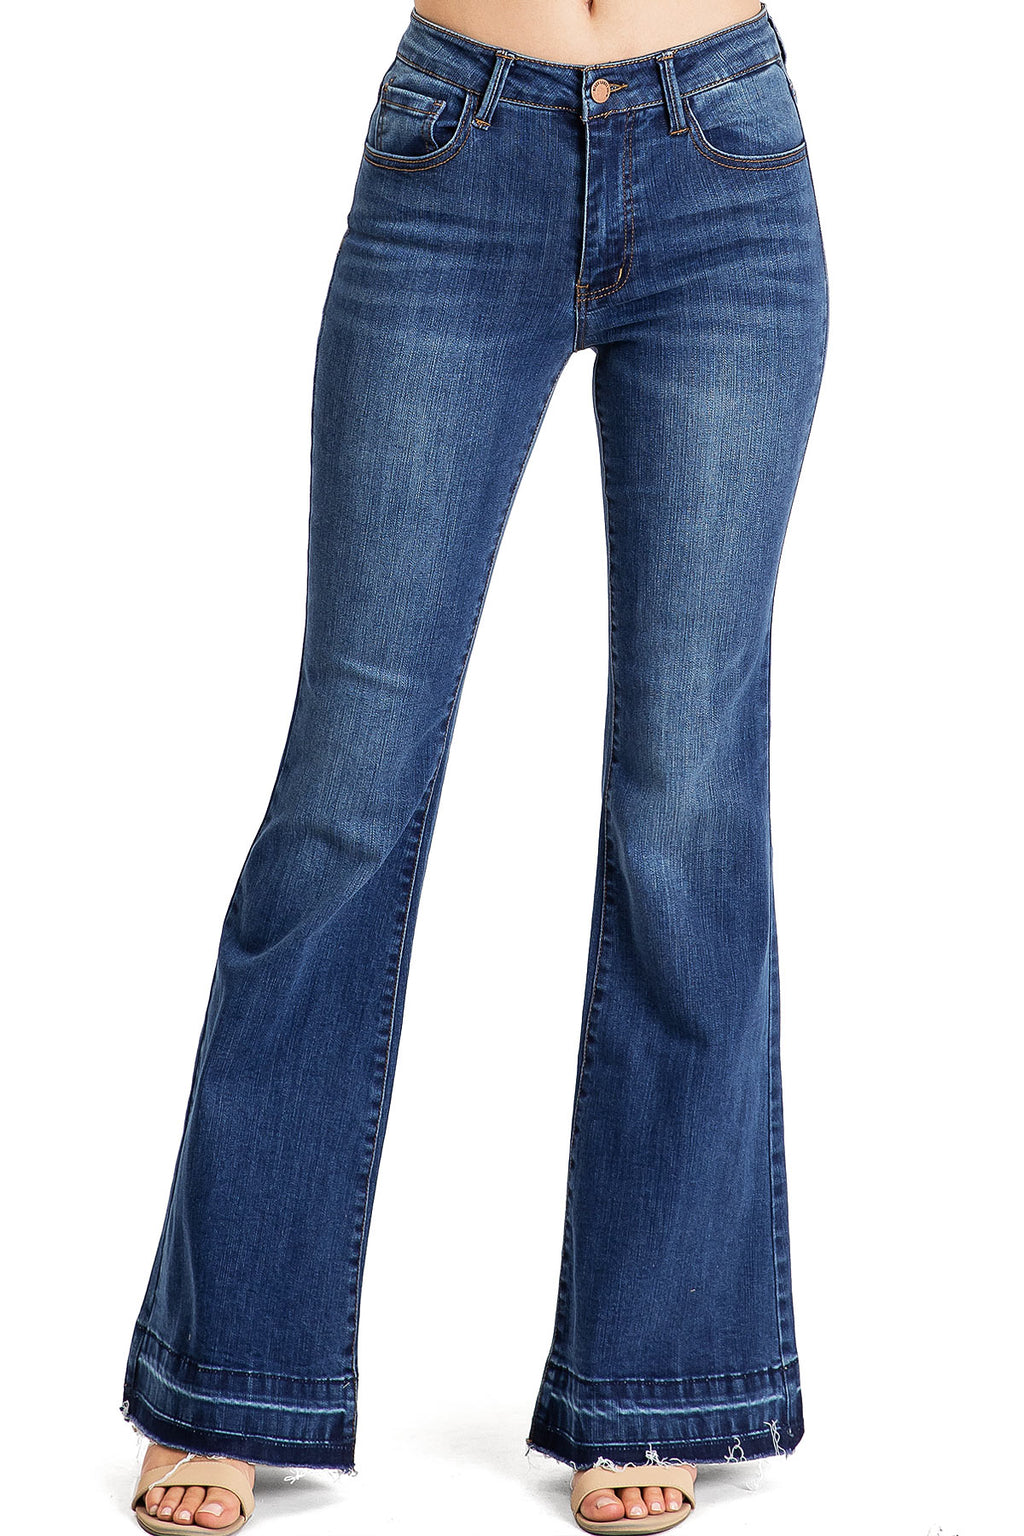 Beverly Bell Bottom Jeans